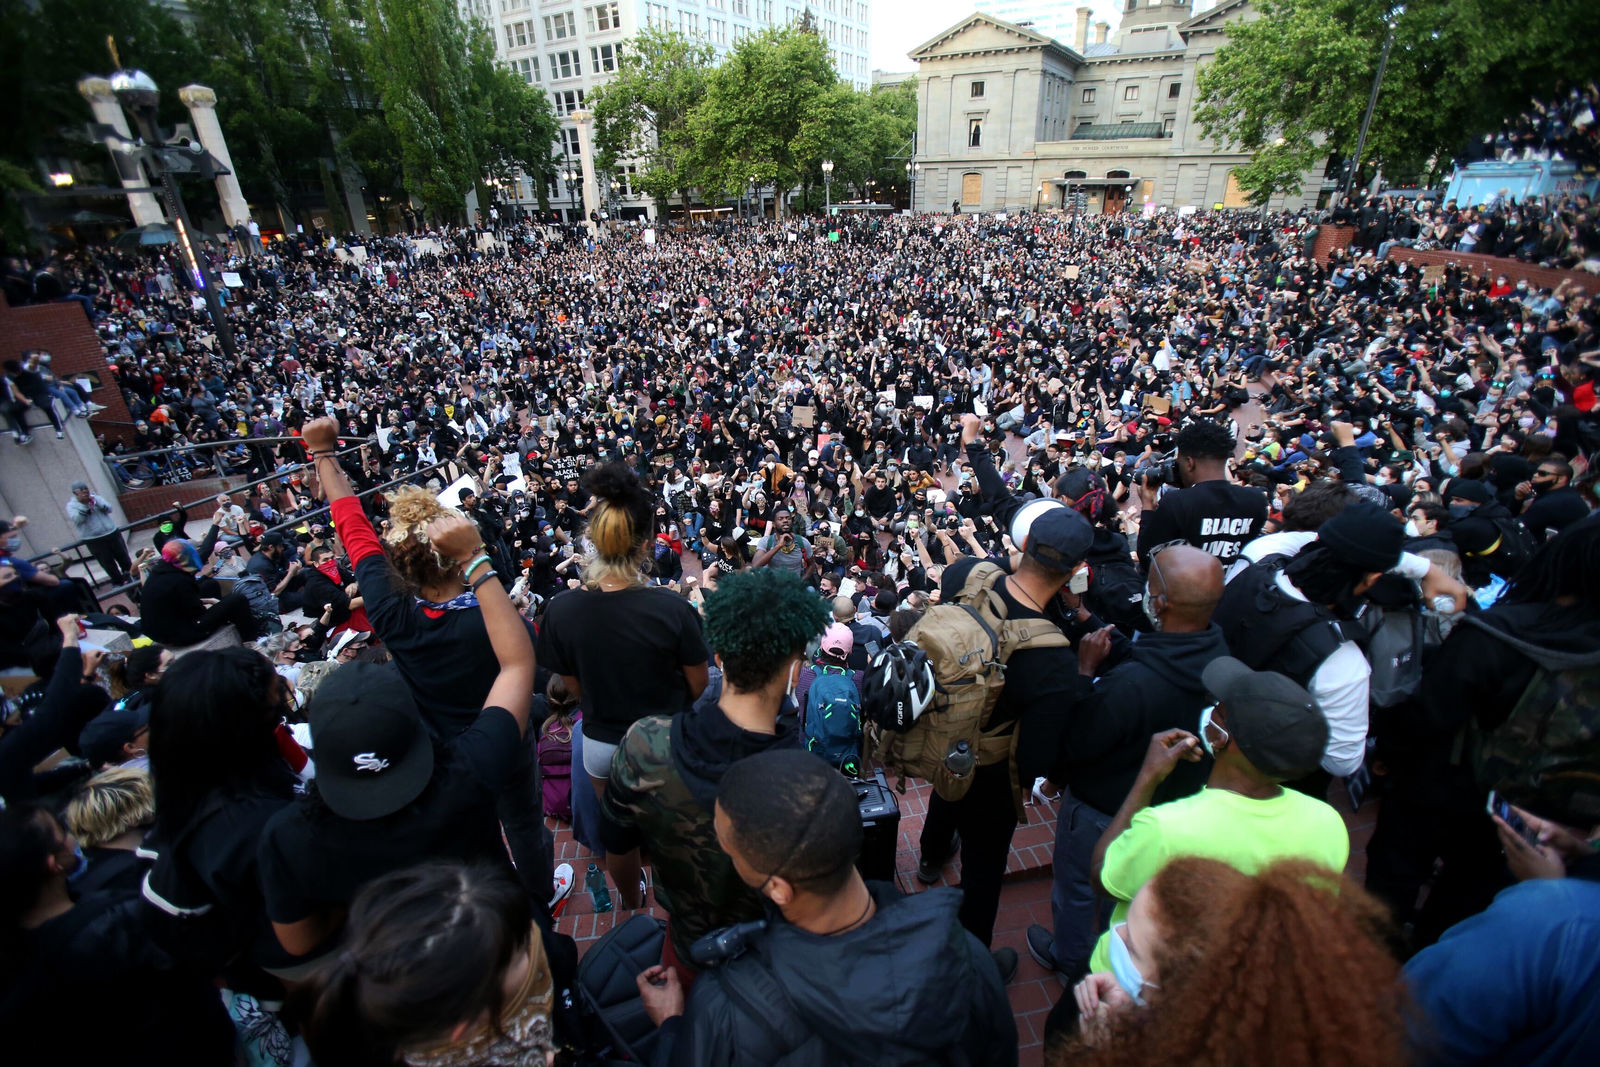 FILE - In this June 2, 2020, file photo, a crowd gathers in Pioneer Square in downtown Portland, Ore., as protests continued against the death of George Floyd. (Sean Meagher/The Oregonian via AP, File)